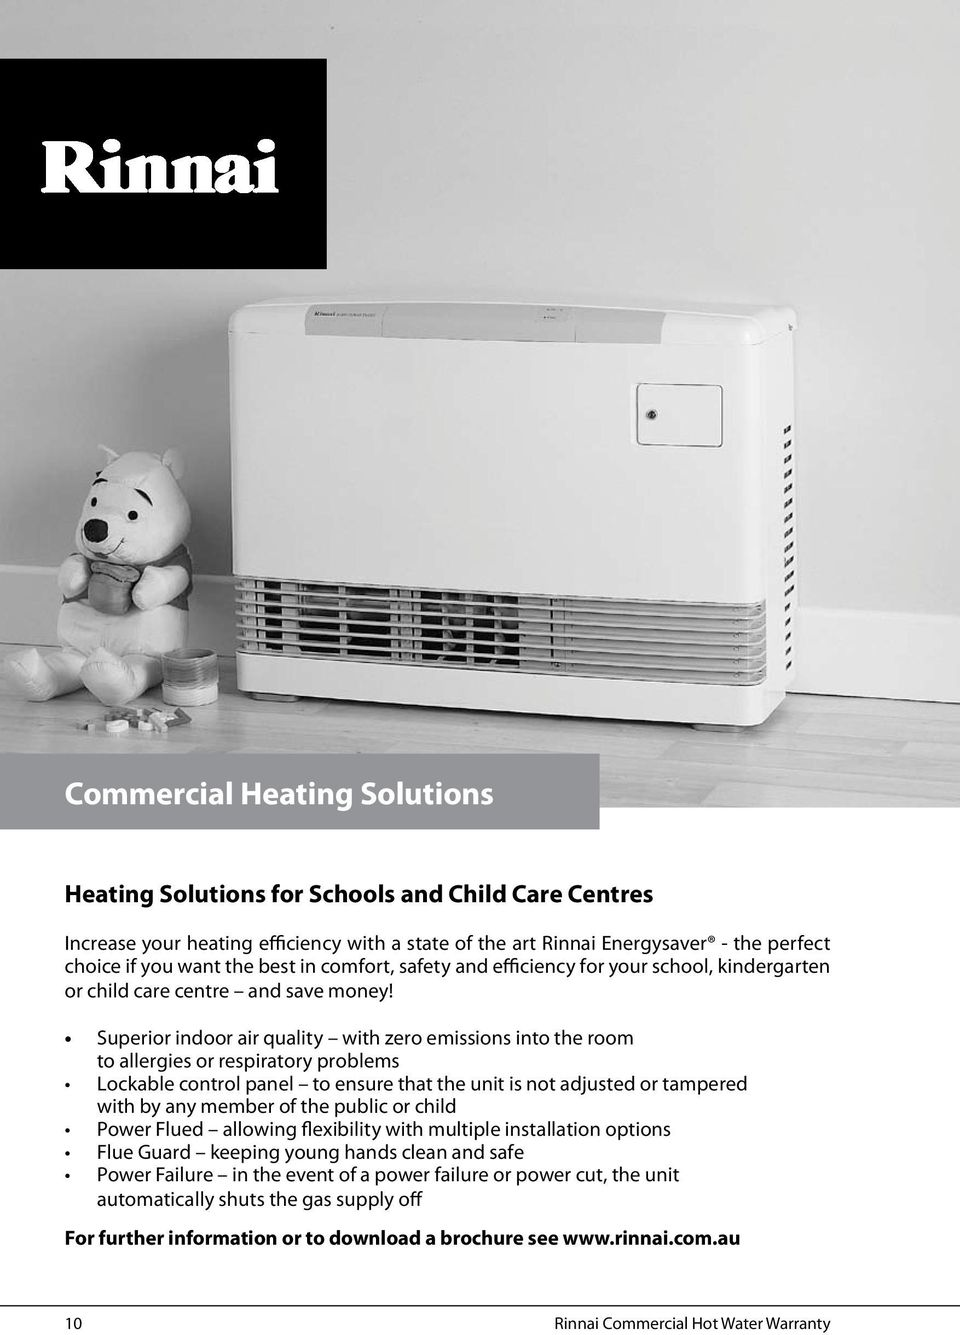 Superior indoor air quality with zero emissions into the room to allergies or respiratory problems Lockable control panel to ensure that the unit is not adjusted or tampered with by any member of the